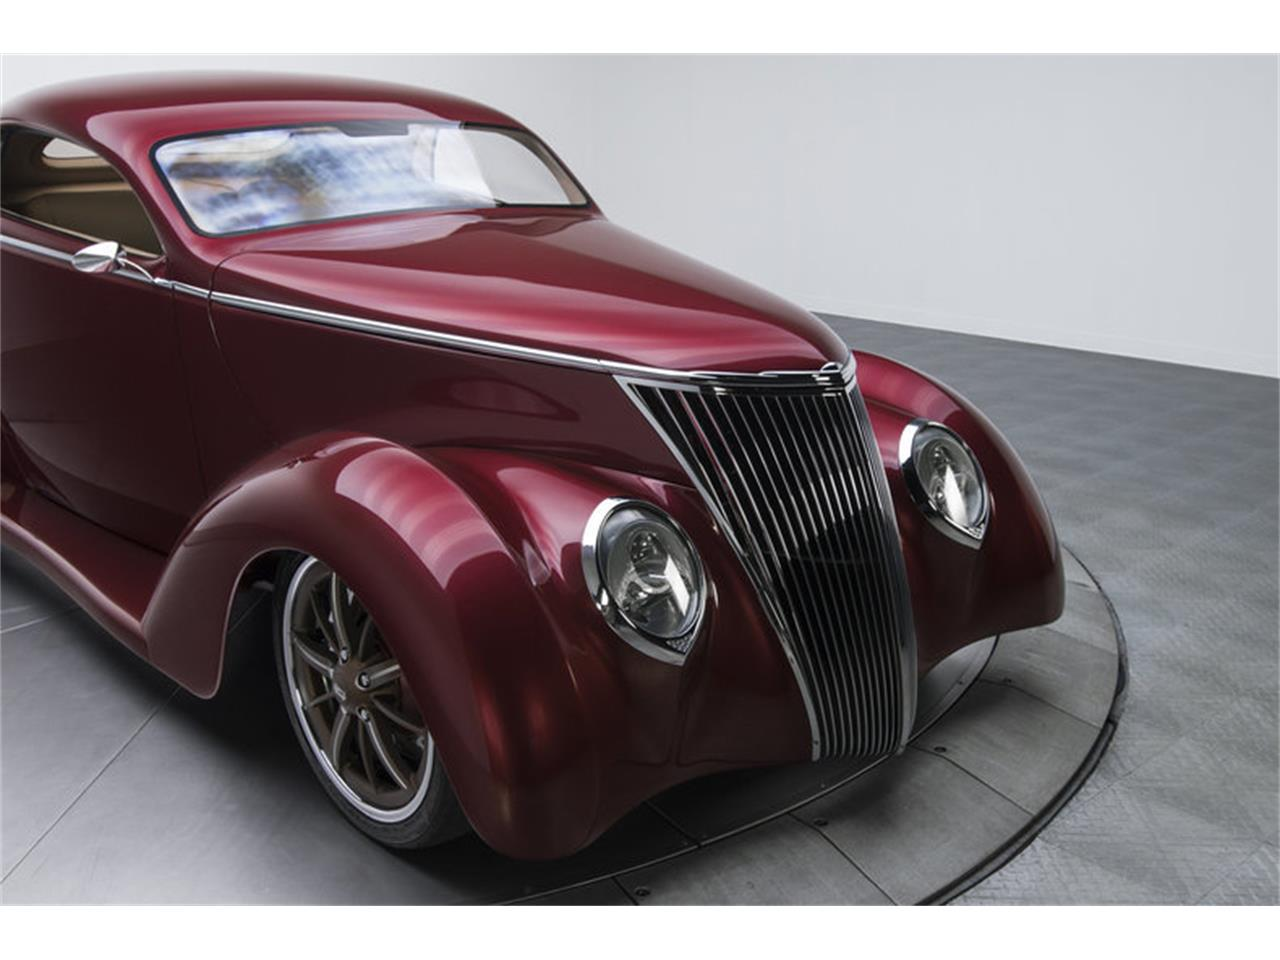 Large Picture of Classic 1937 Ford Coupe located in North Carolina - $159,900.00 - I585